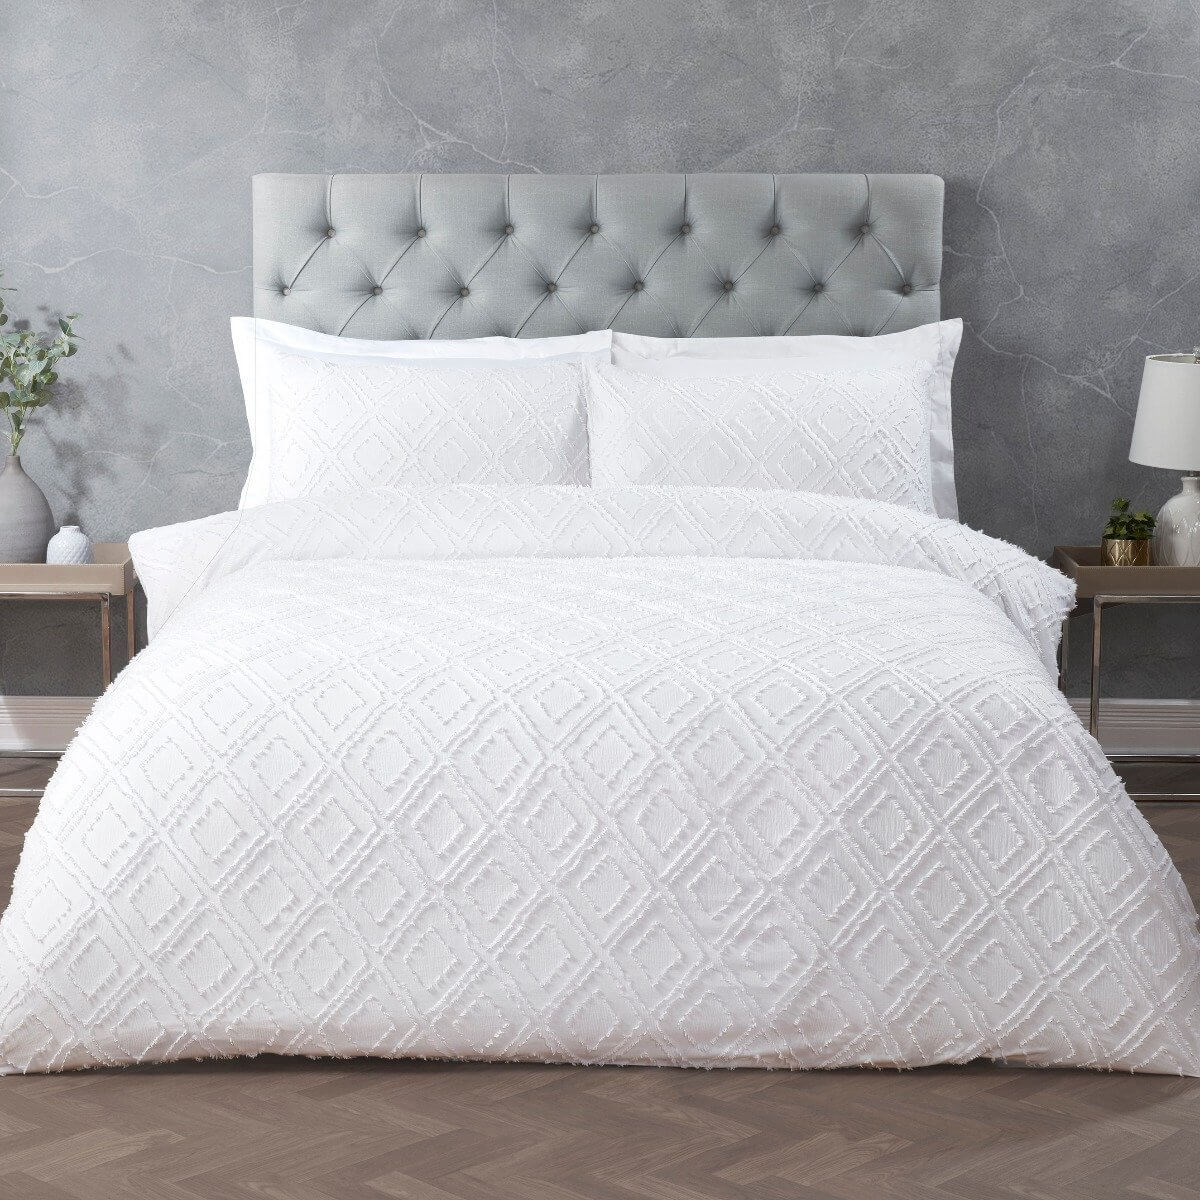 Geo Tufted White Bedding Reversible Duvet Cover And Pillowcase Set